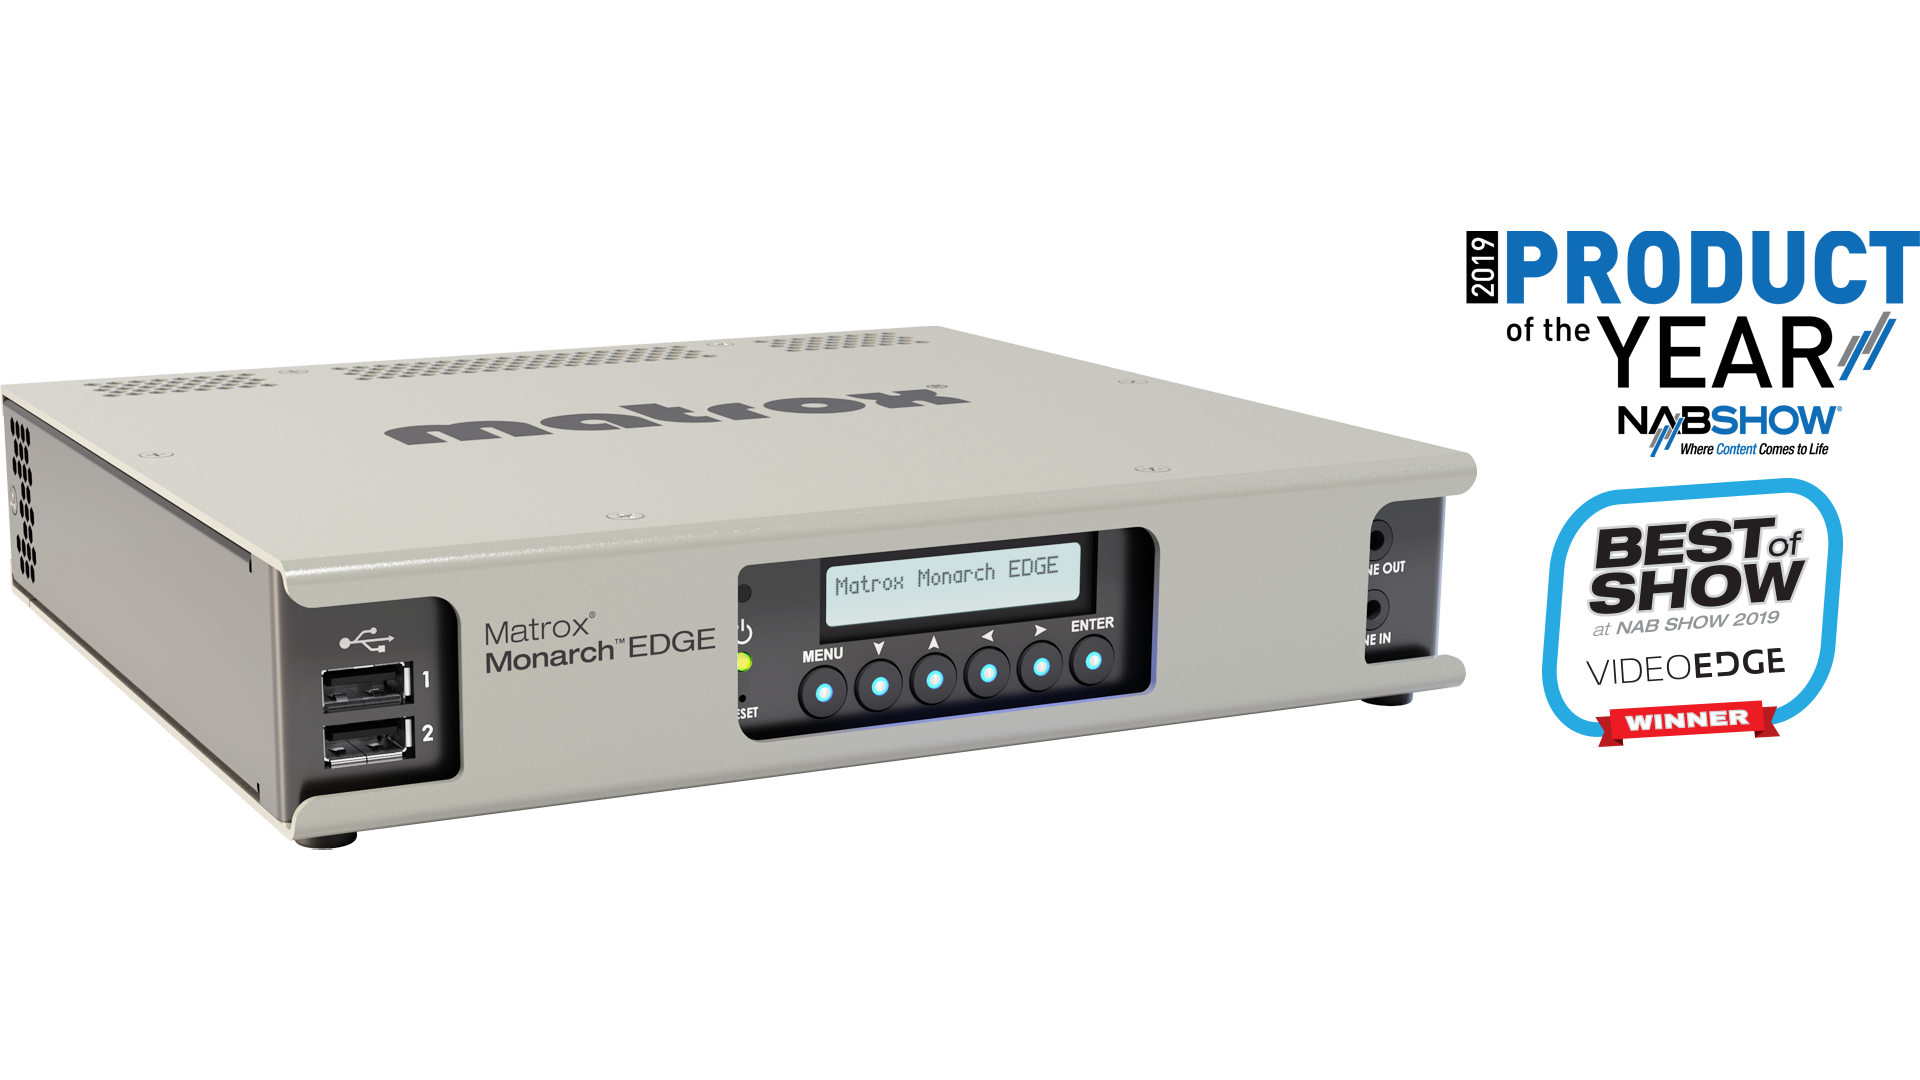 Matrox Monarch Edge Wins Product of the Year at NAB Show 2019